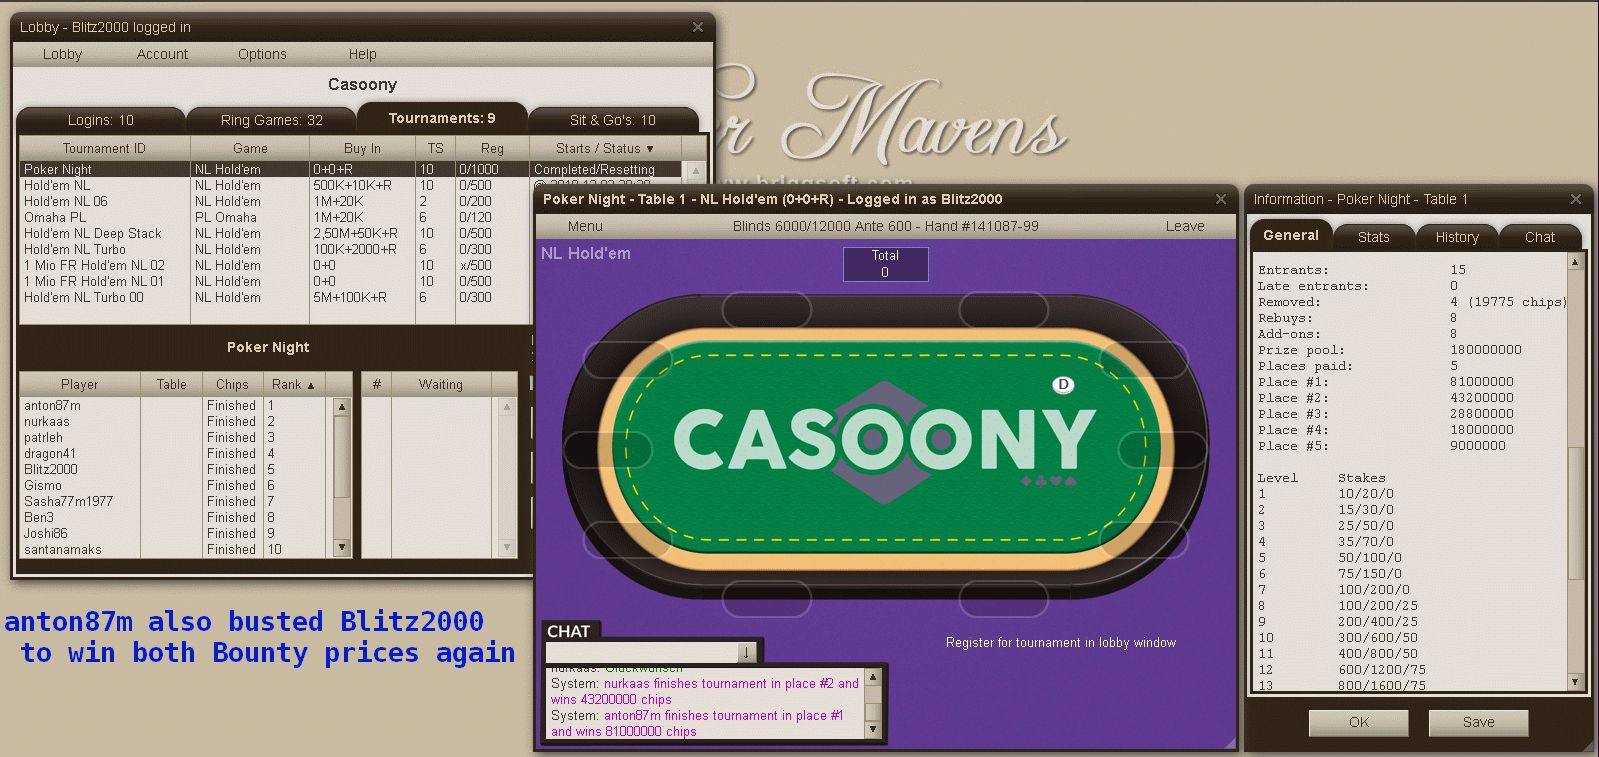 Casoony_Poker_Lobby-PokerNight_20191201_2142_5THPLACE_SHOW.gif